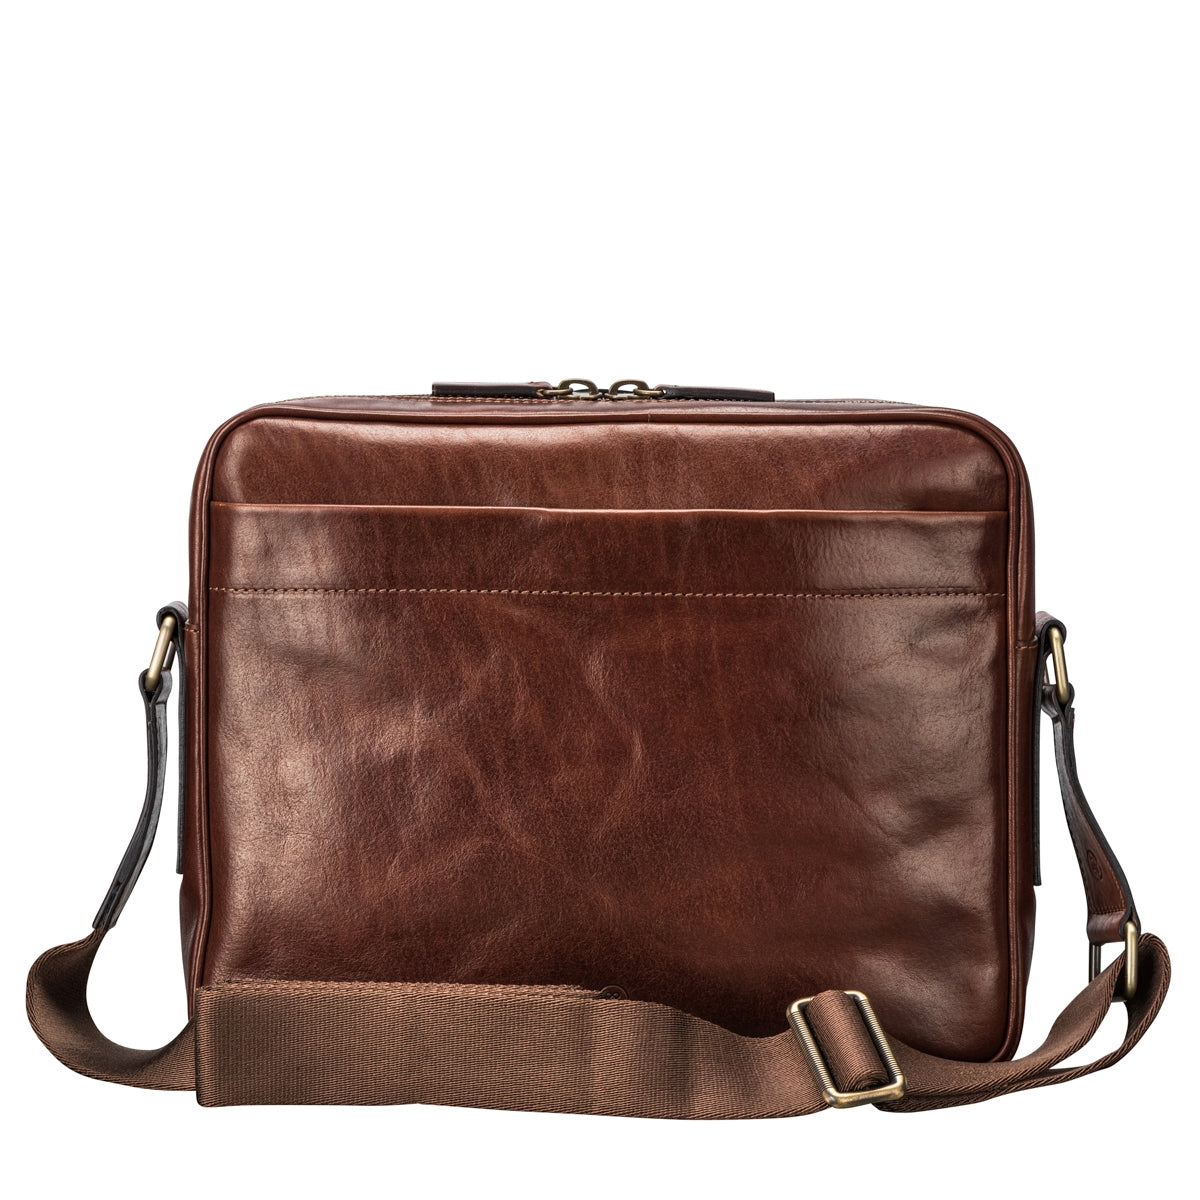 Image 4 of the Santino' Chestnut Handmade Veg-Tanned Leather Messenger Bag With Lock